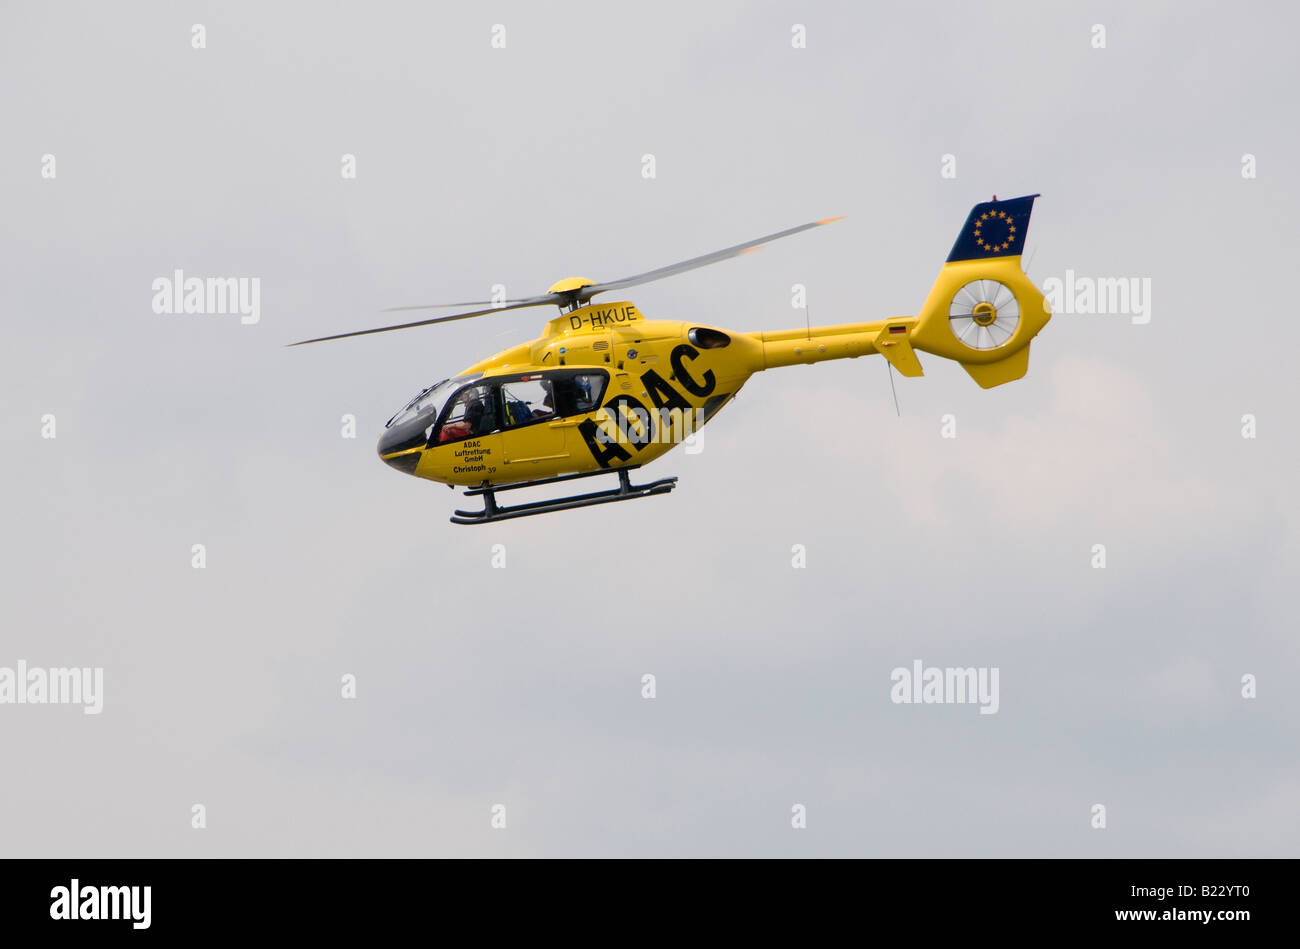 adac helicopter stockfotos adac helicopter bilder alamy. Black Bedroom Furniture Sets. Home Design Ideas